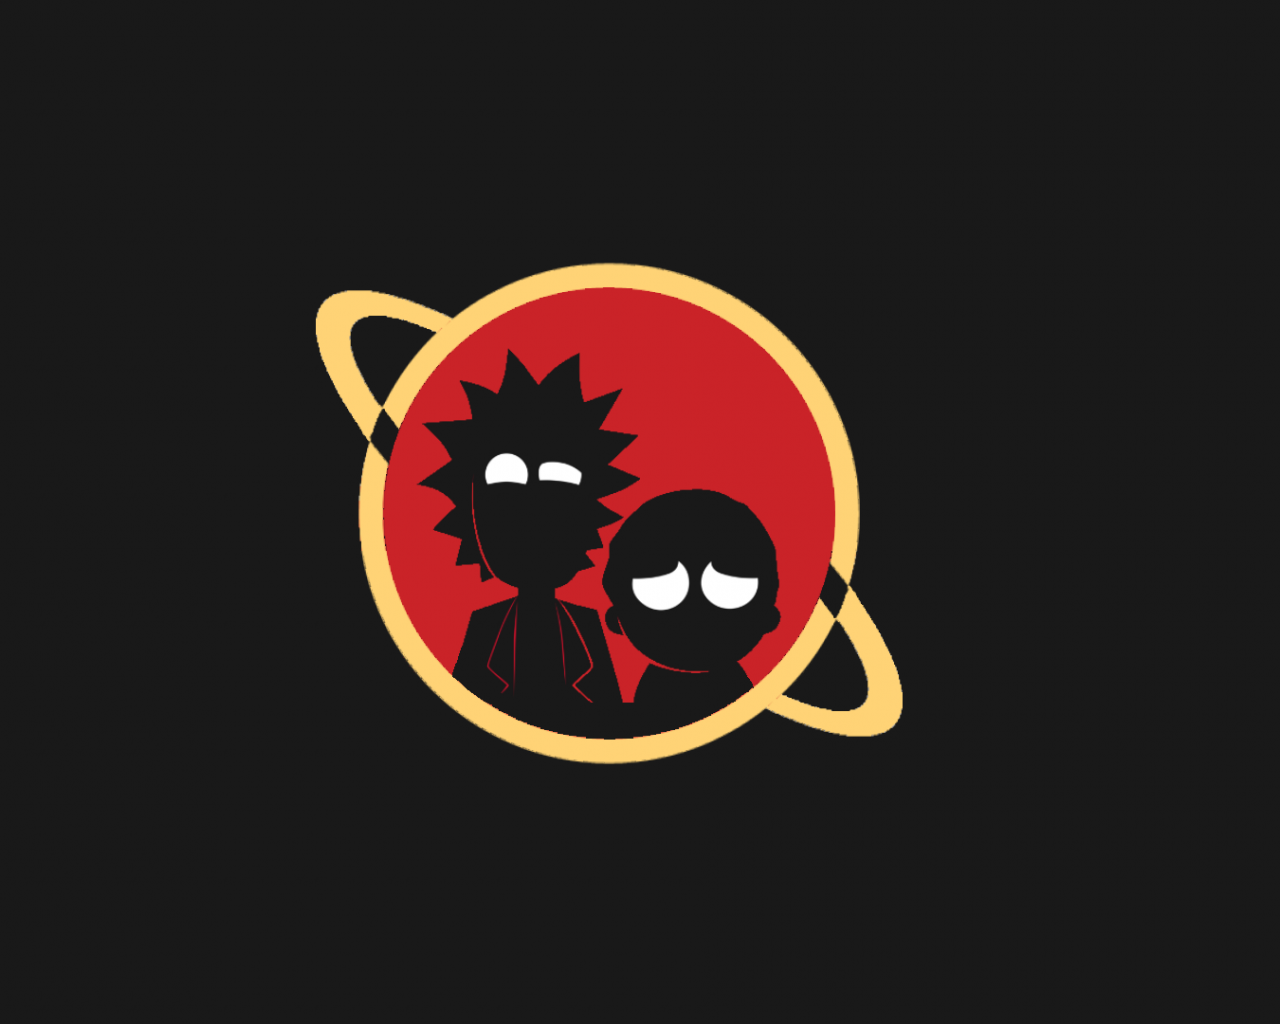 Free Download Rick And Morty Wallpapers High Quality